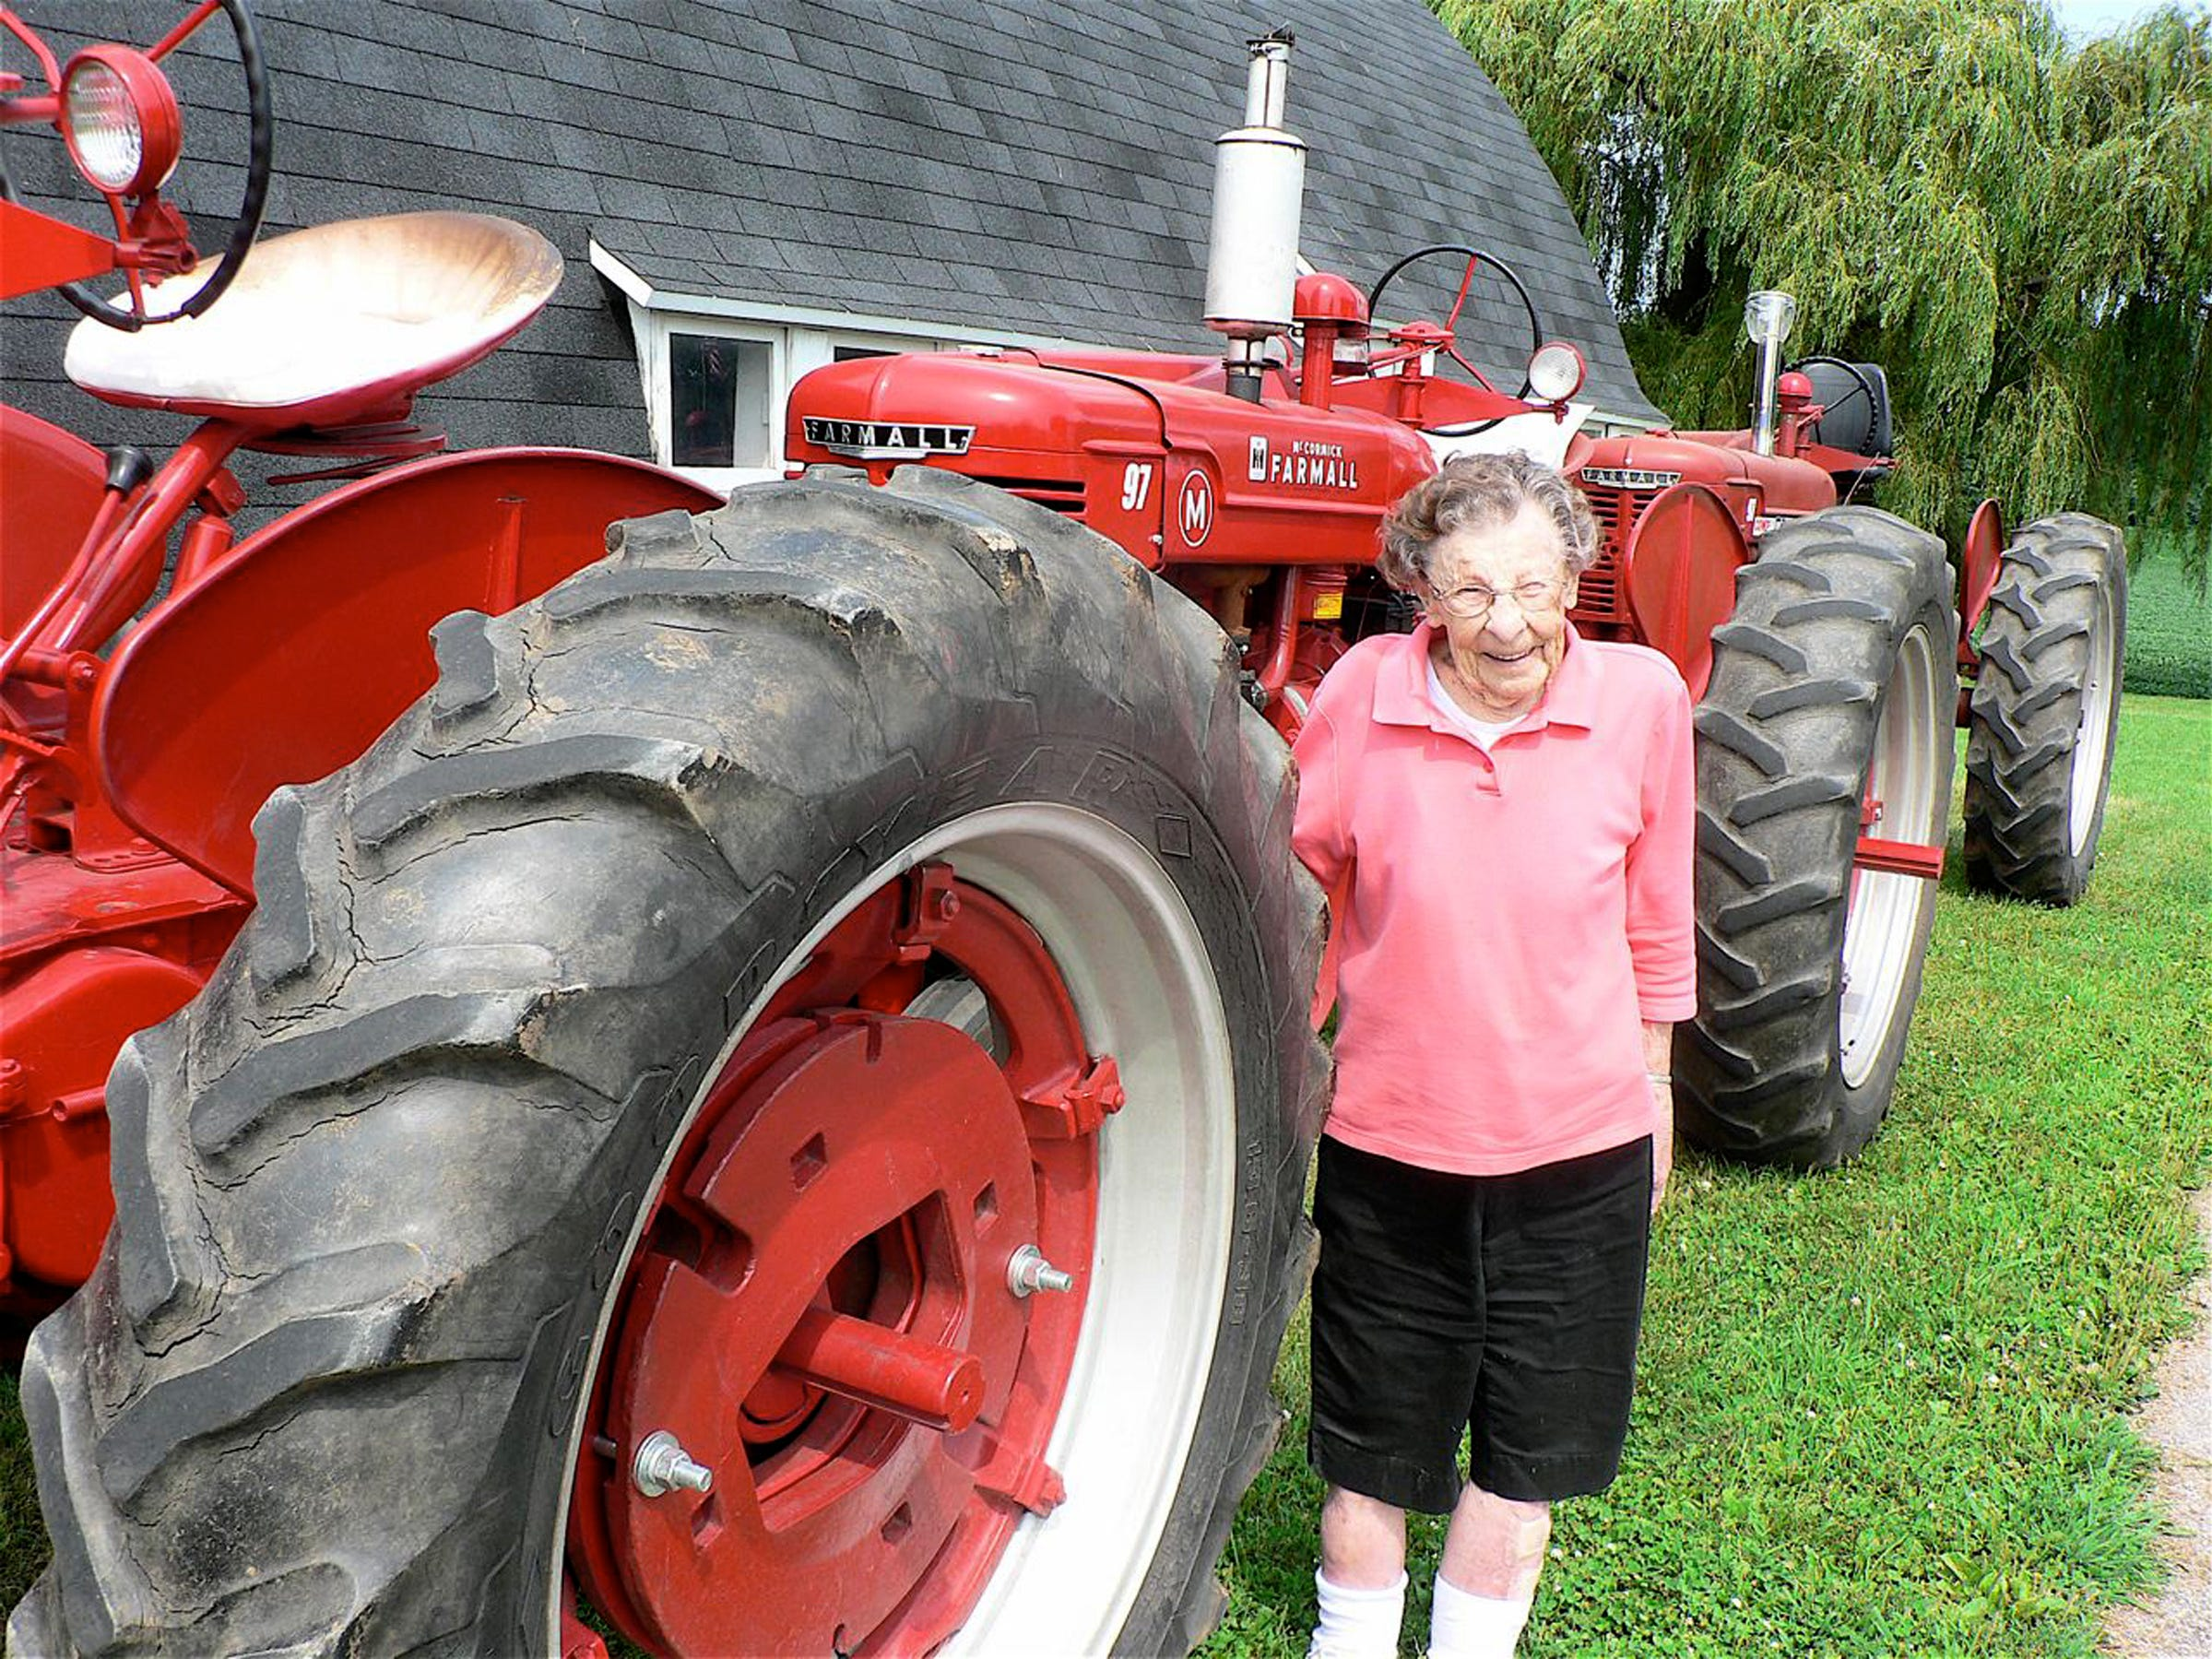 """Lucy Nottestad, Utica, 95 years young, poses with the four Farmall M tractors that her sons use in the yearly tractor pull. Son Ron bought and restored them over the years. """"The yearly tractor pull is a family competition for us,"""" he says."""